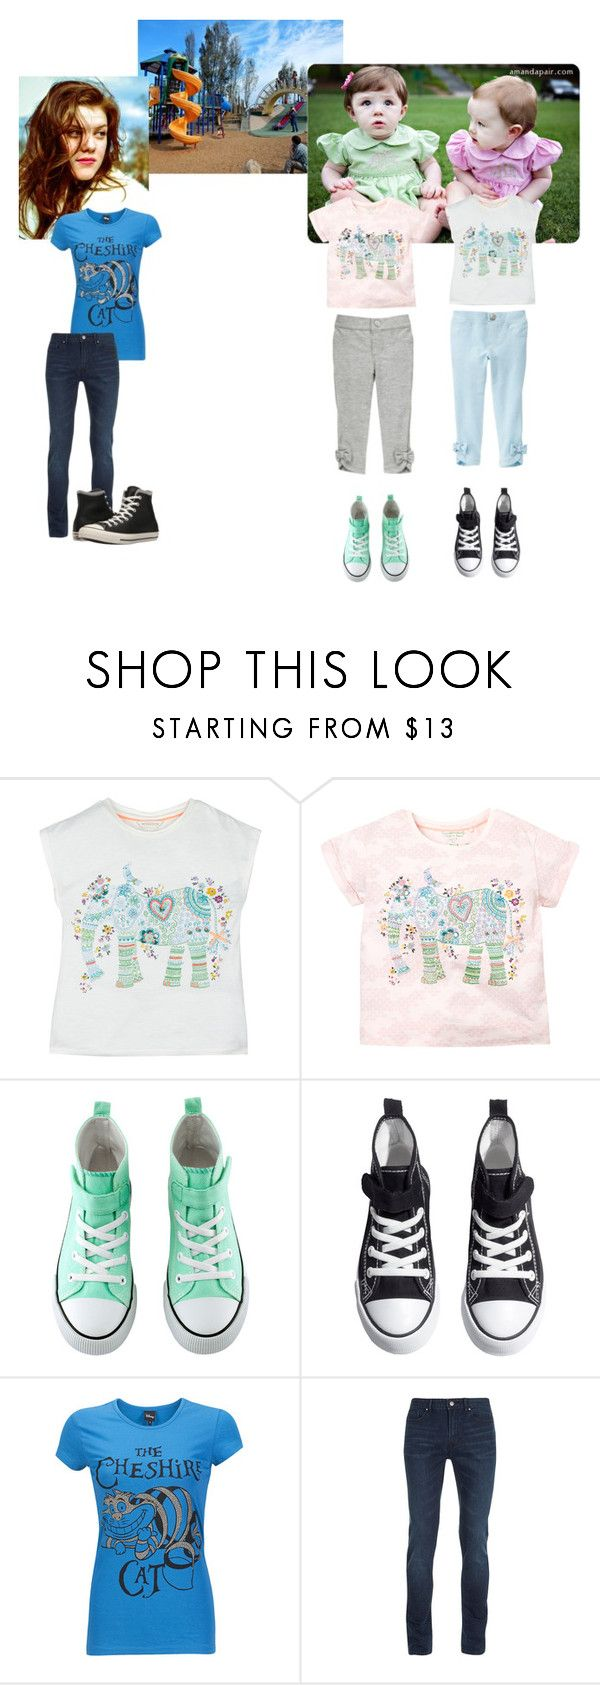 """""""You Weren't Supposed to Find Out"""" by greekmythia ❤ liked on Polyvore featuring Avery, Gymboree, Monsoon, H&M, Silvian Heach, Topman, Converse, jophie and layne"""